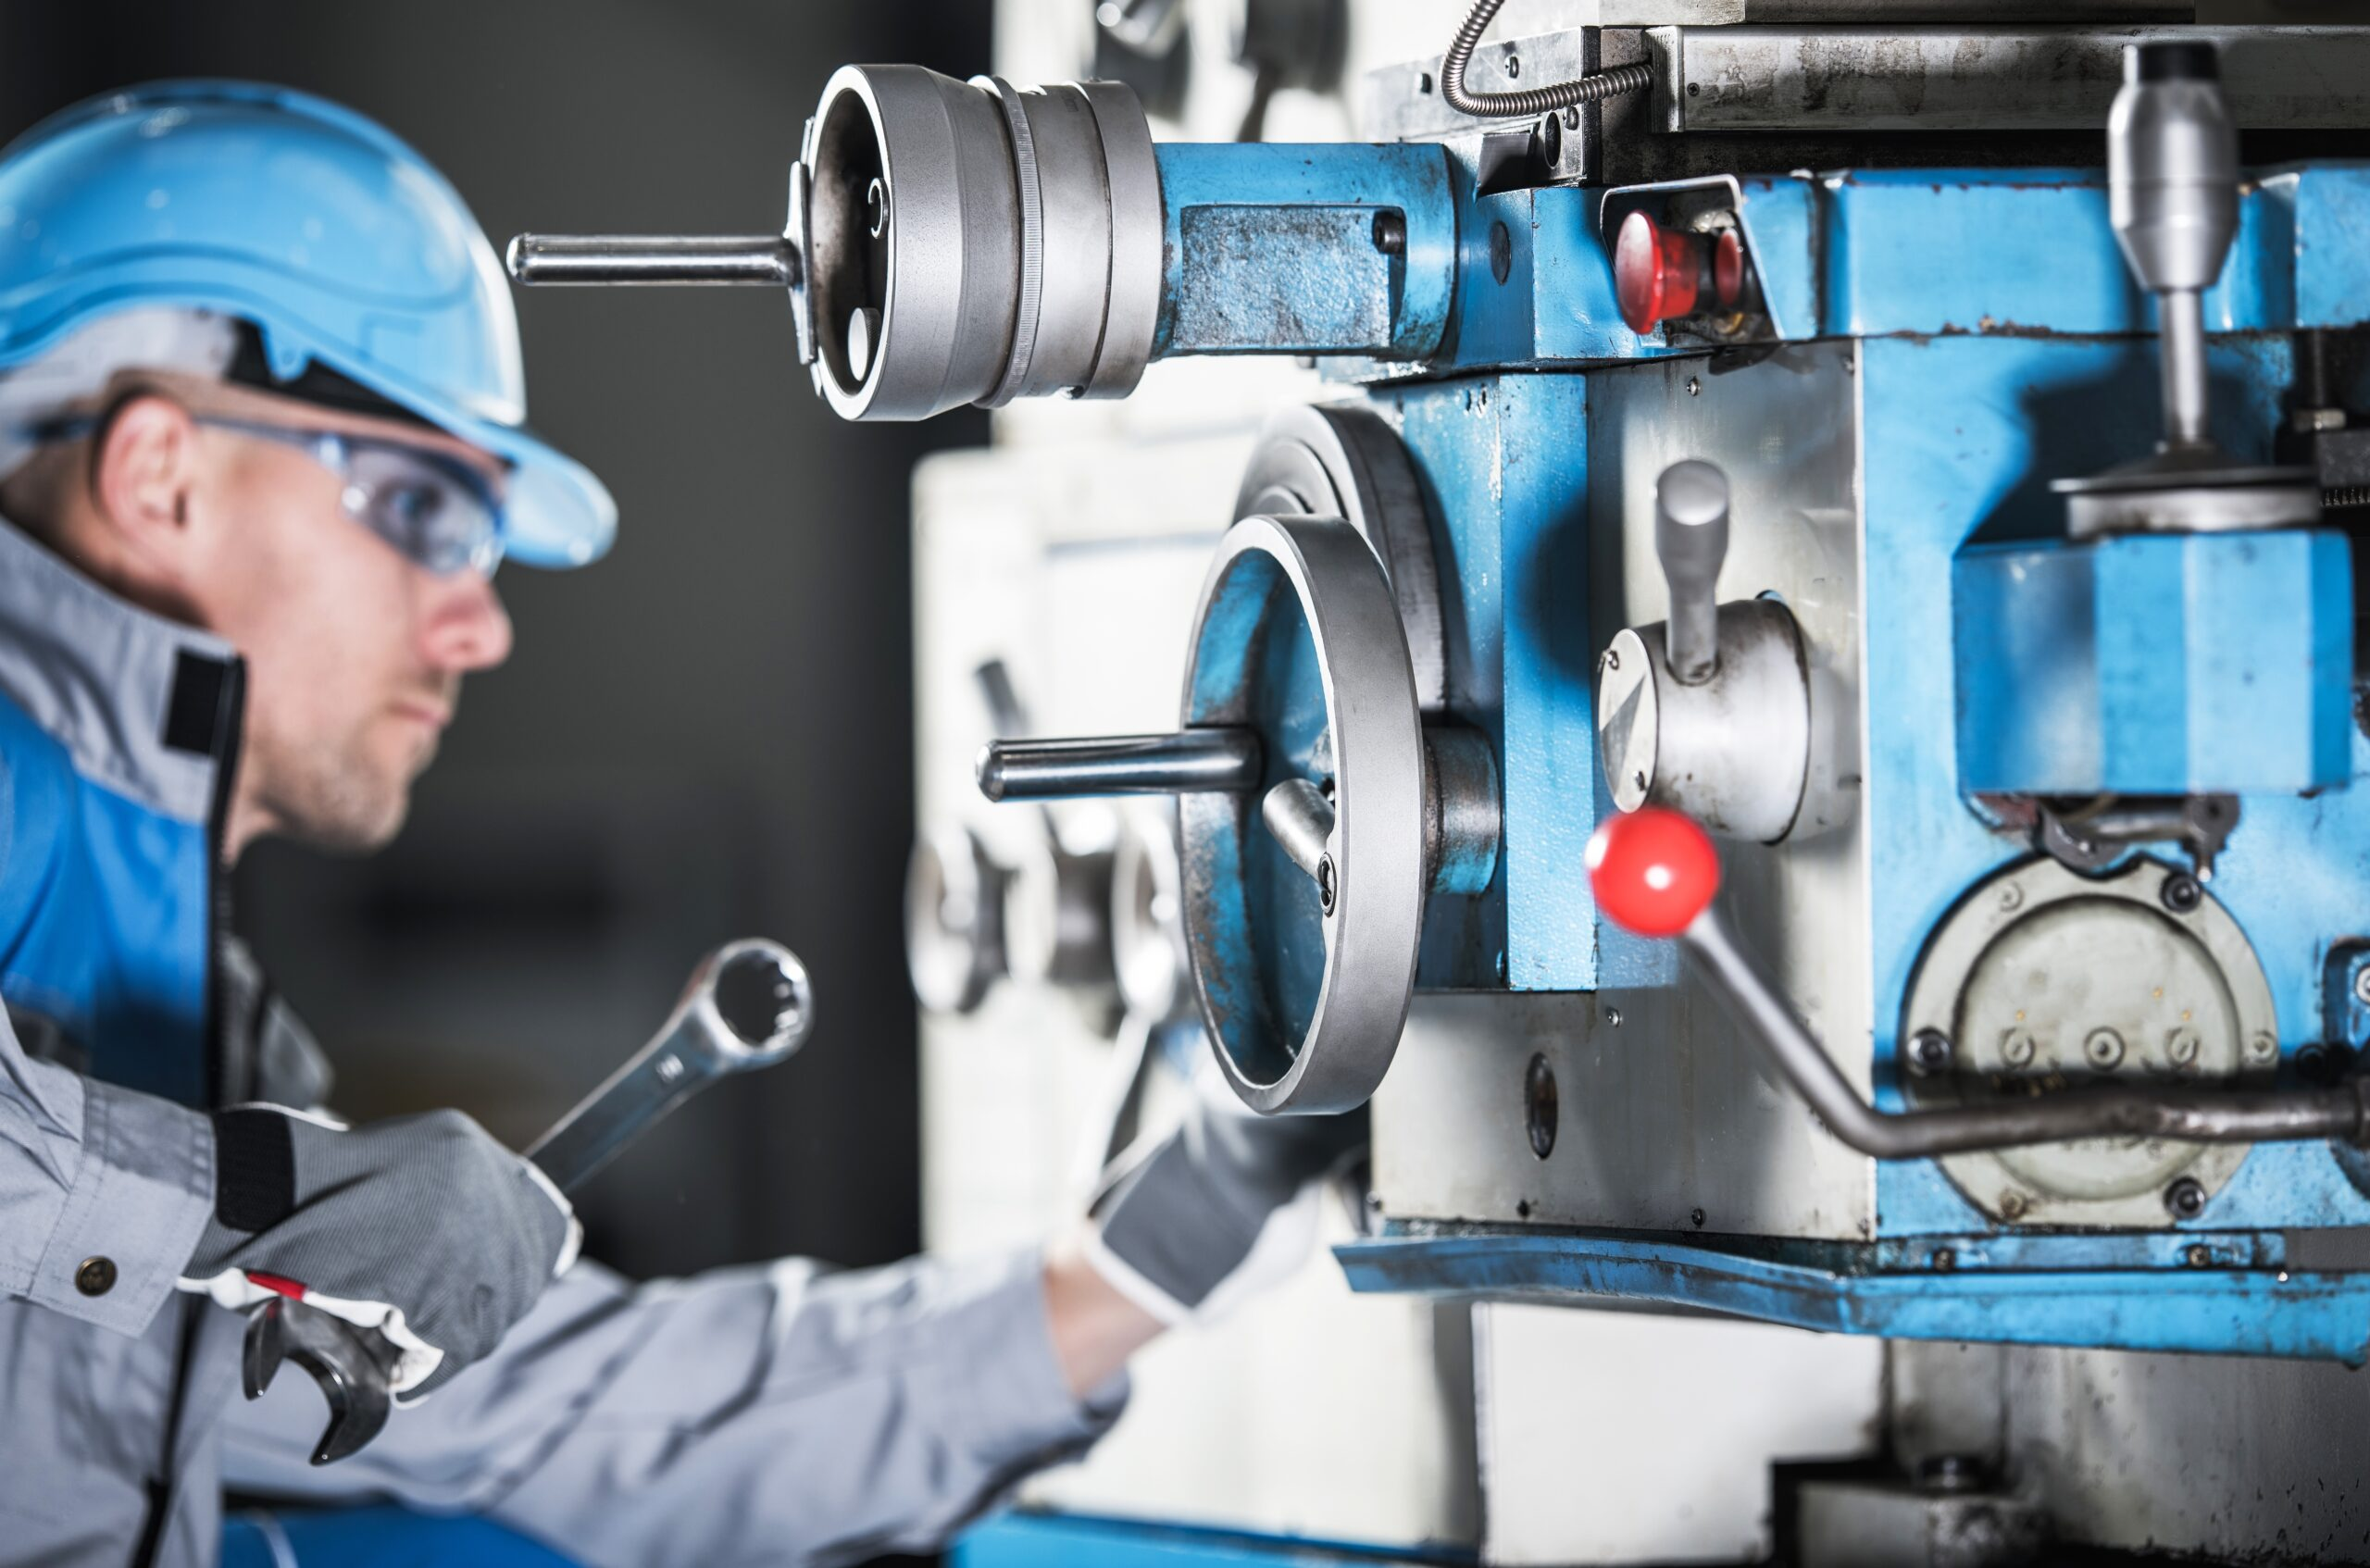 Aftermarket for Industrial OEMs